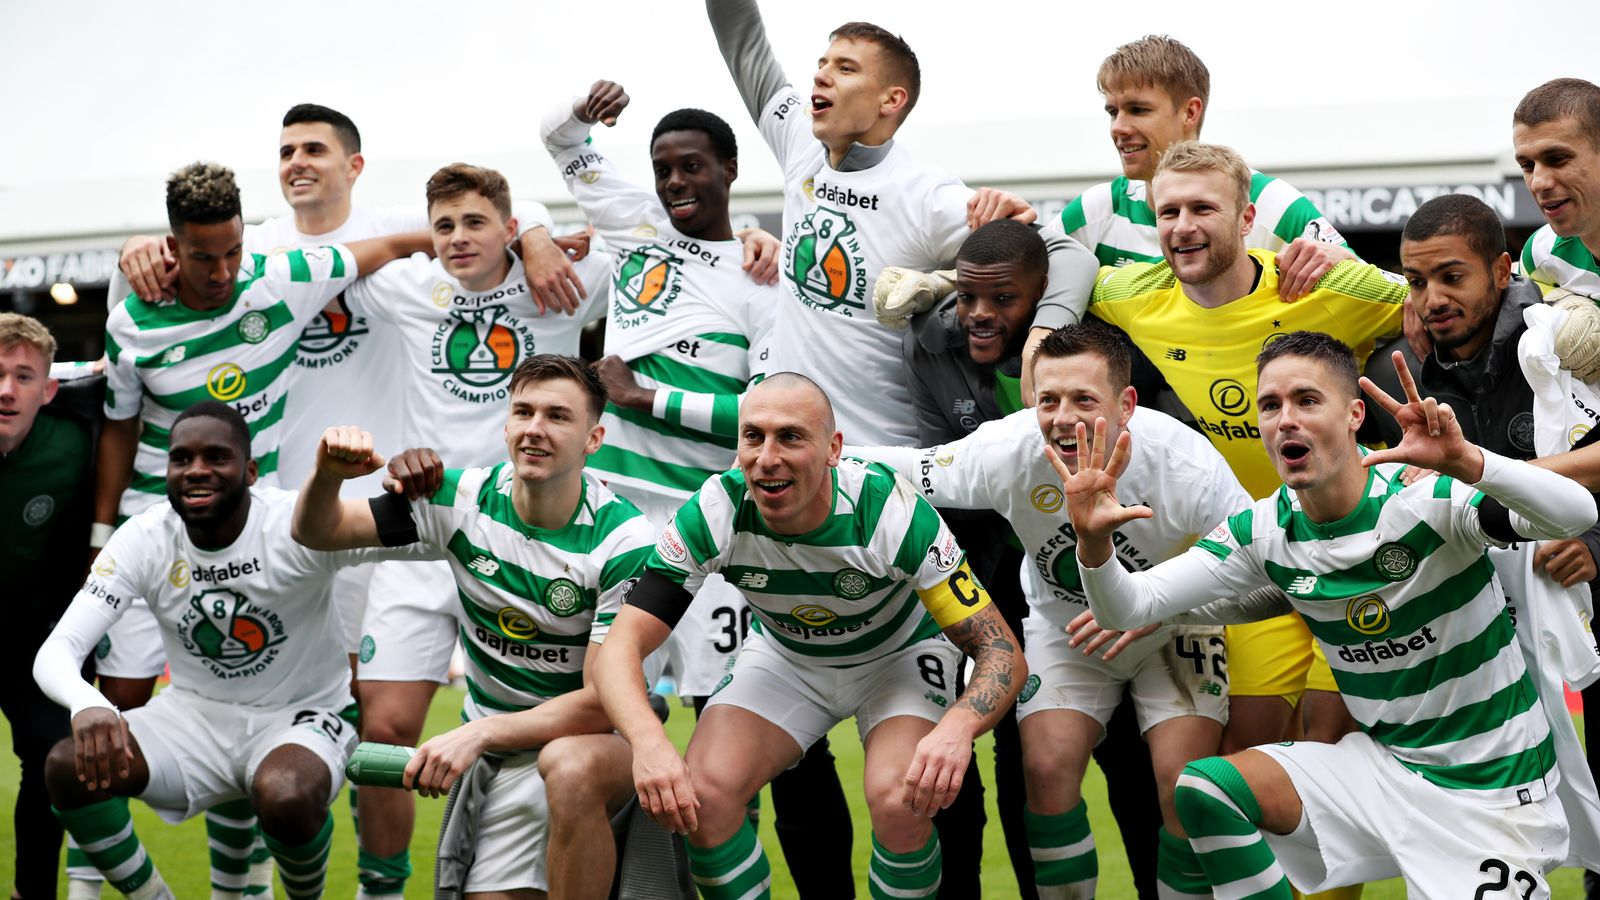 Celtic to face either Maccabi Tel-Aviv or Cluj in Champions League qualifier